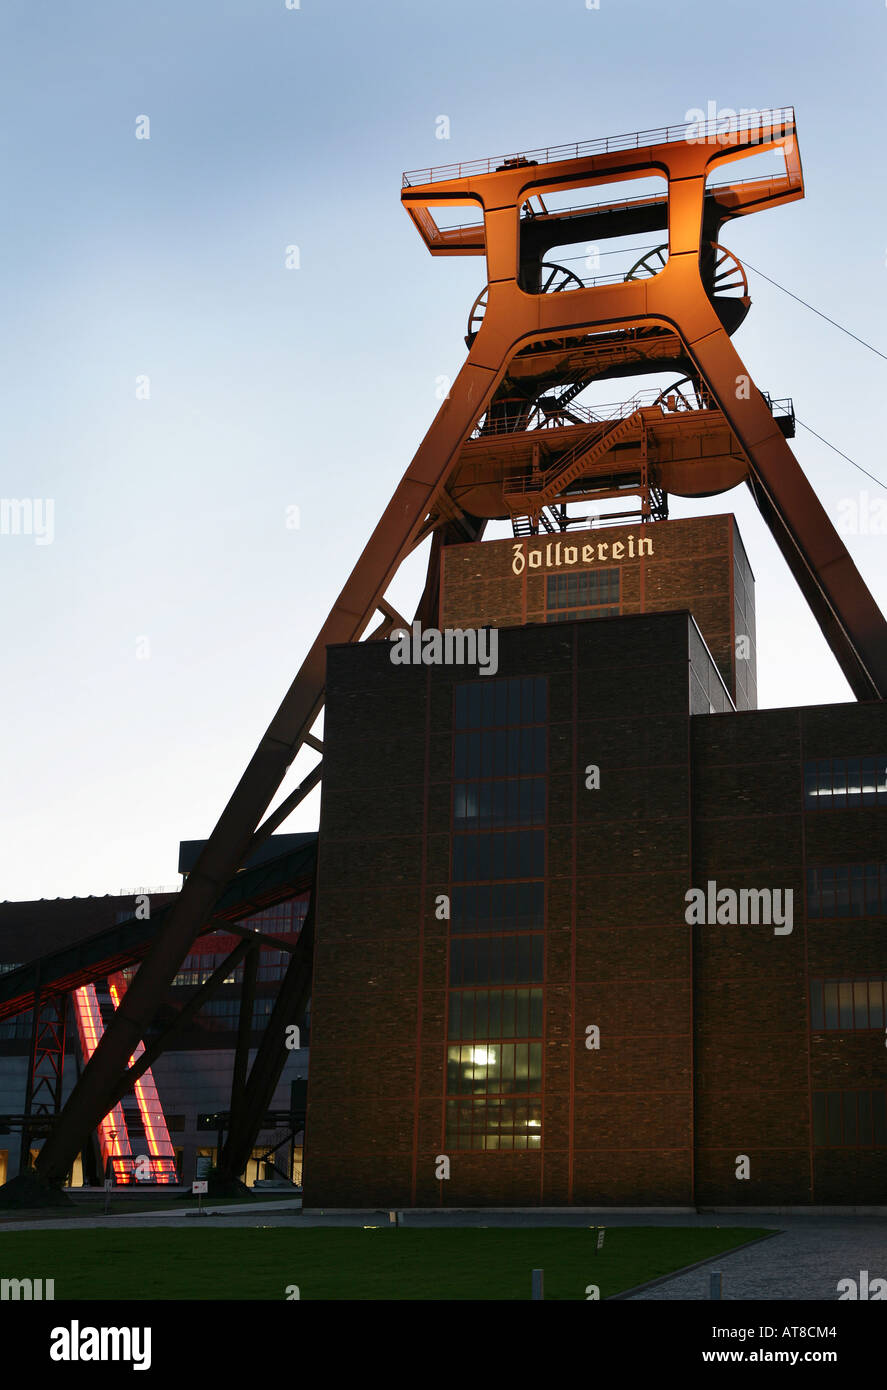 DEU, Germany, Essen : Unesco World heritage site, former coal mine, Zeche Zollverein. Stock Photo